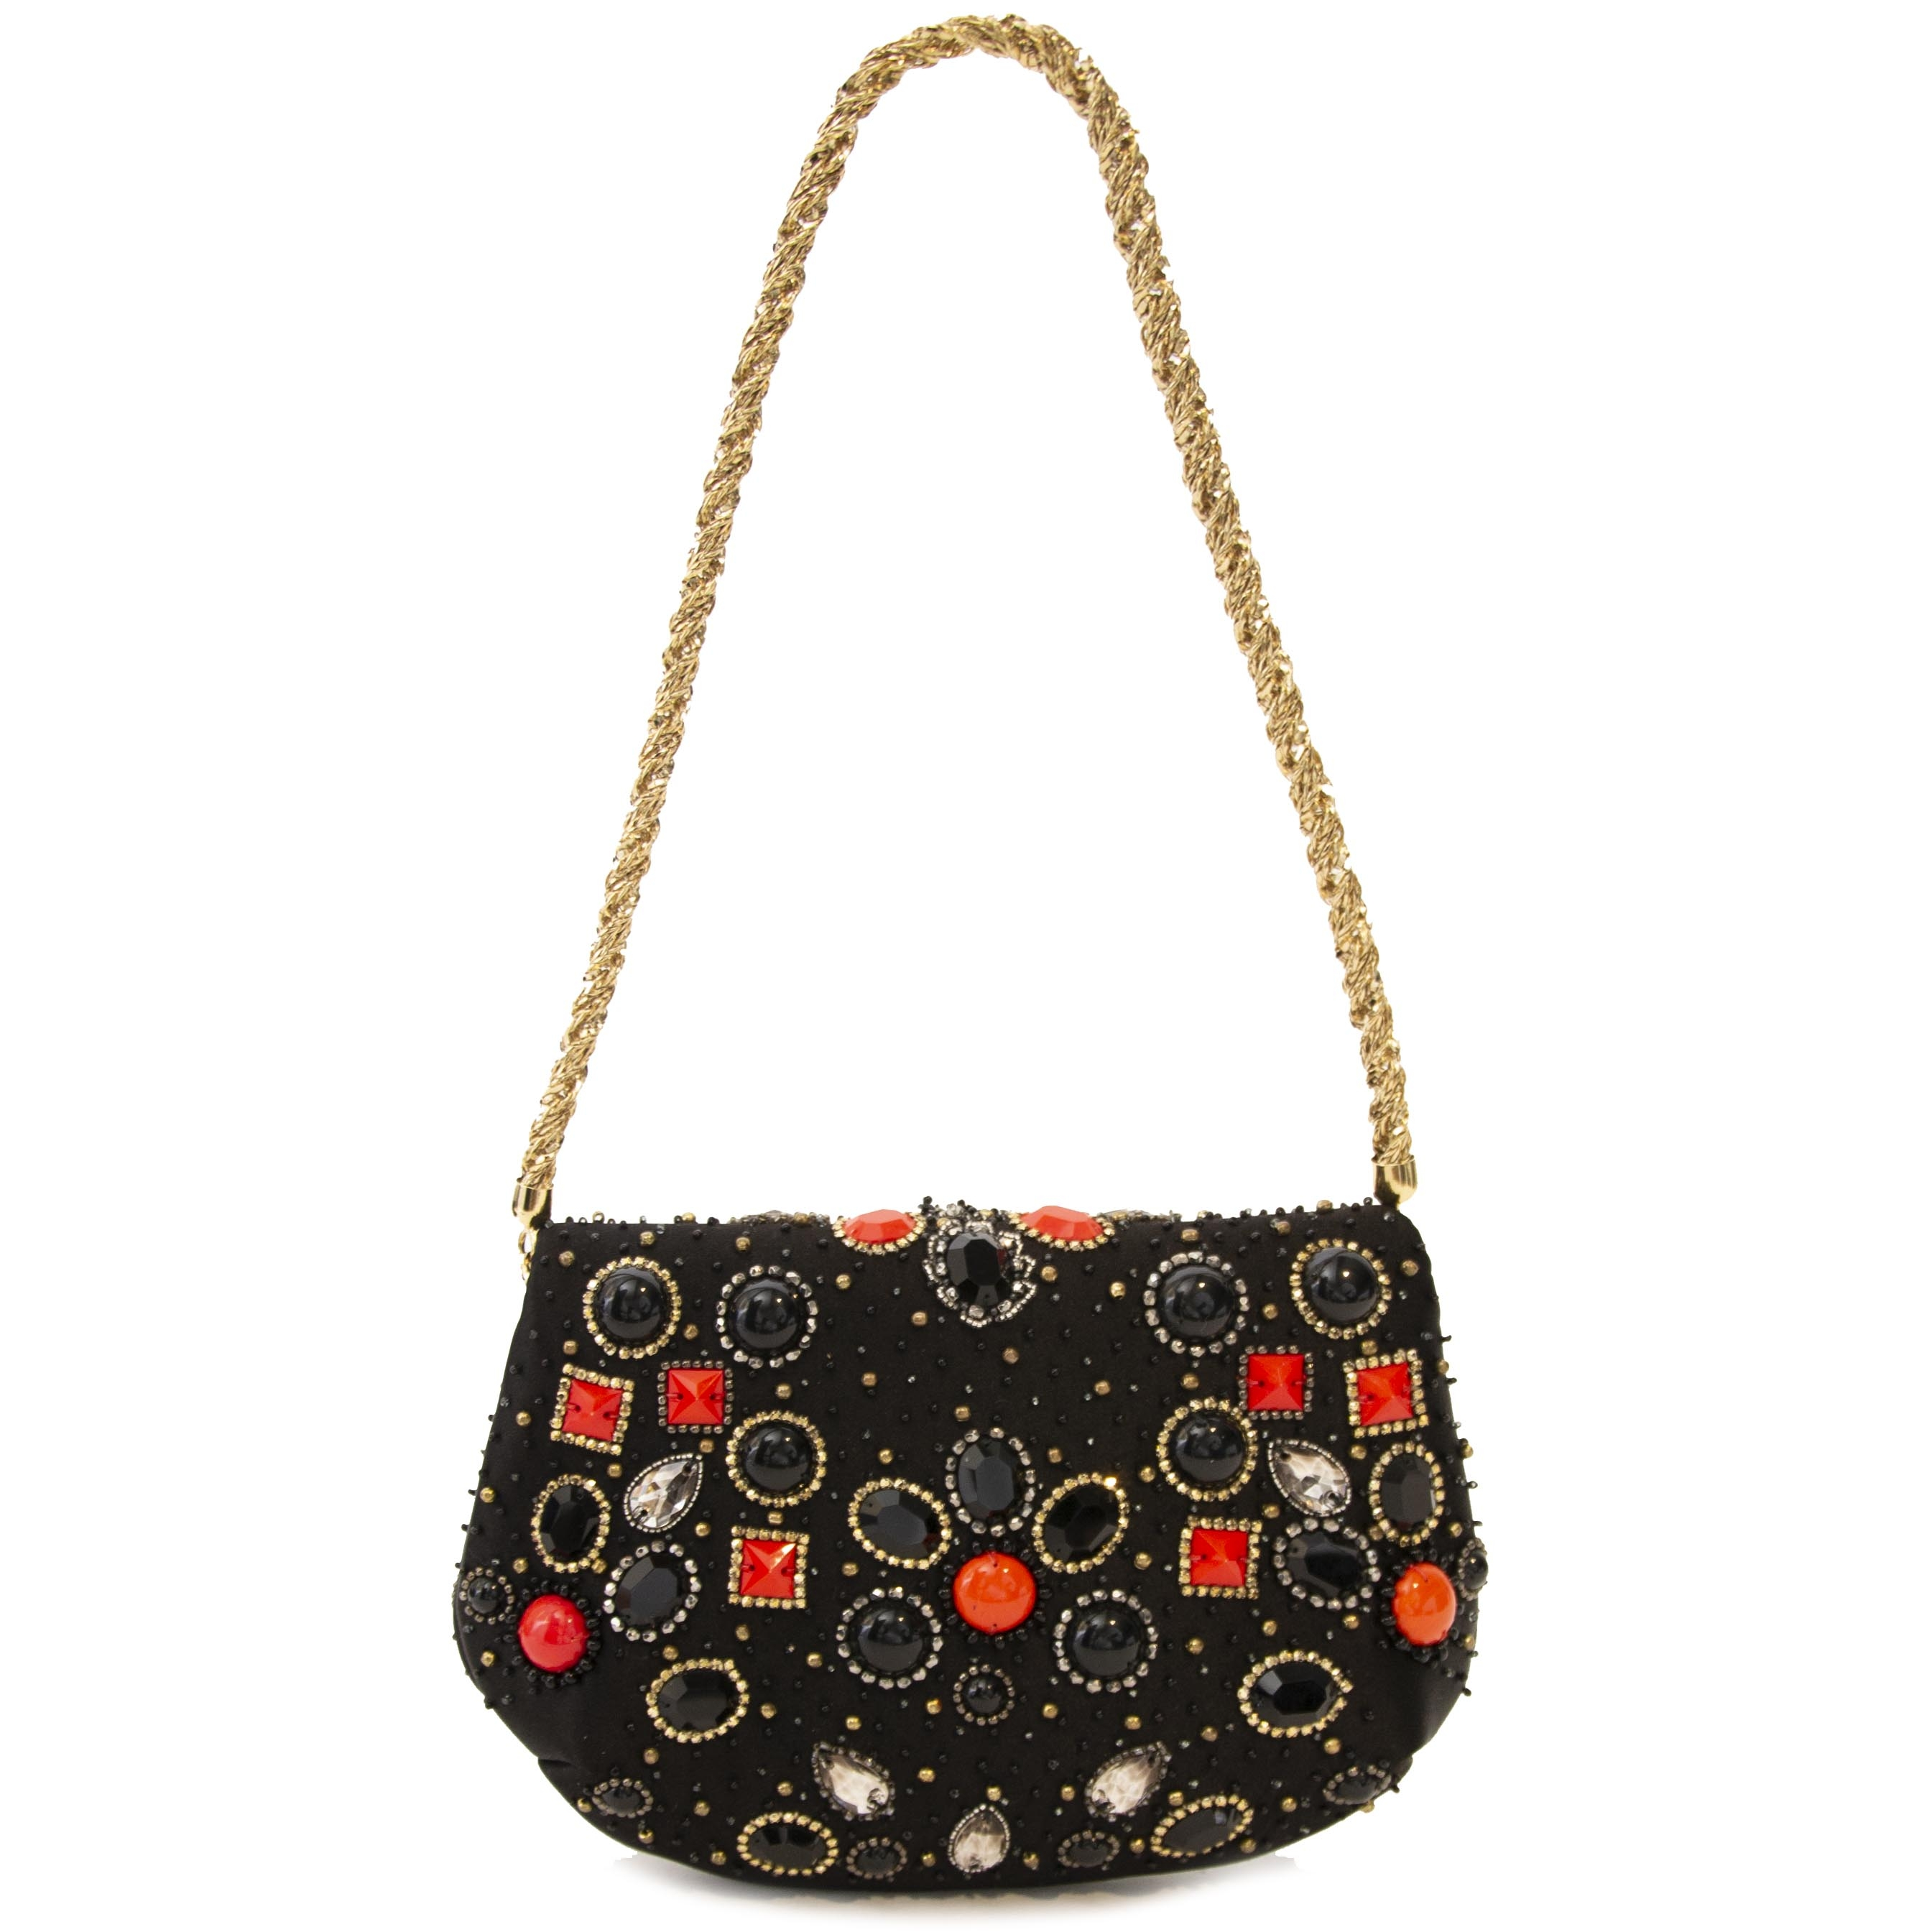 Dolce & Gabbana Black Miss Bijoux Embellished Chain Clutch now at labellov.com antwerp